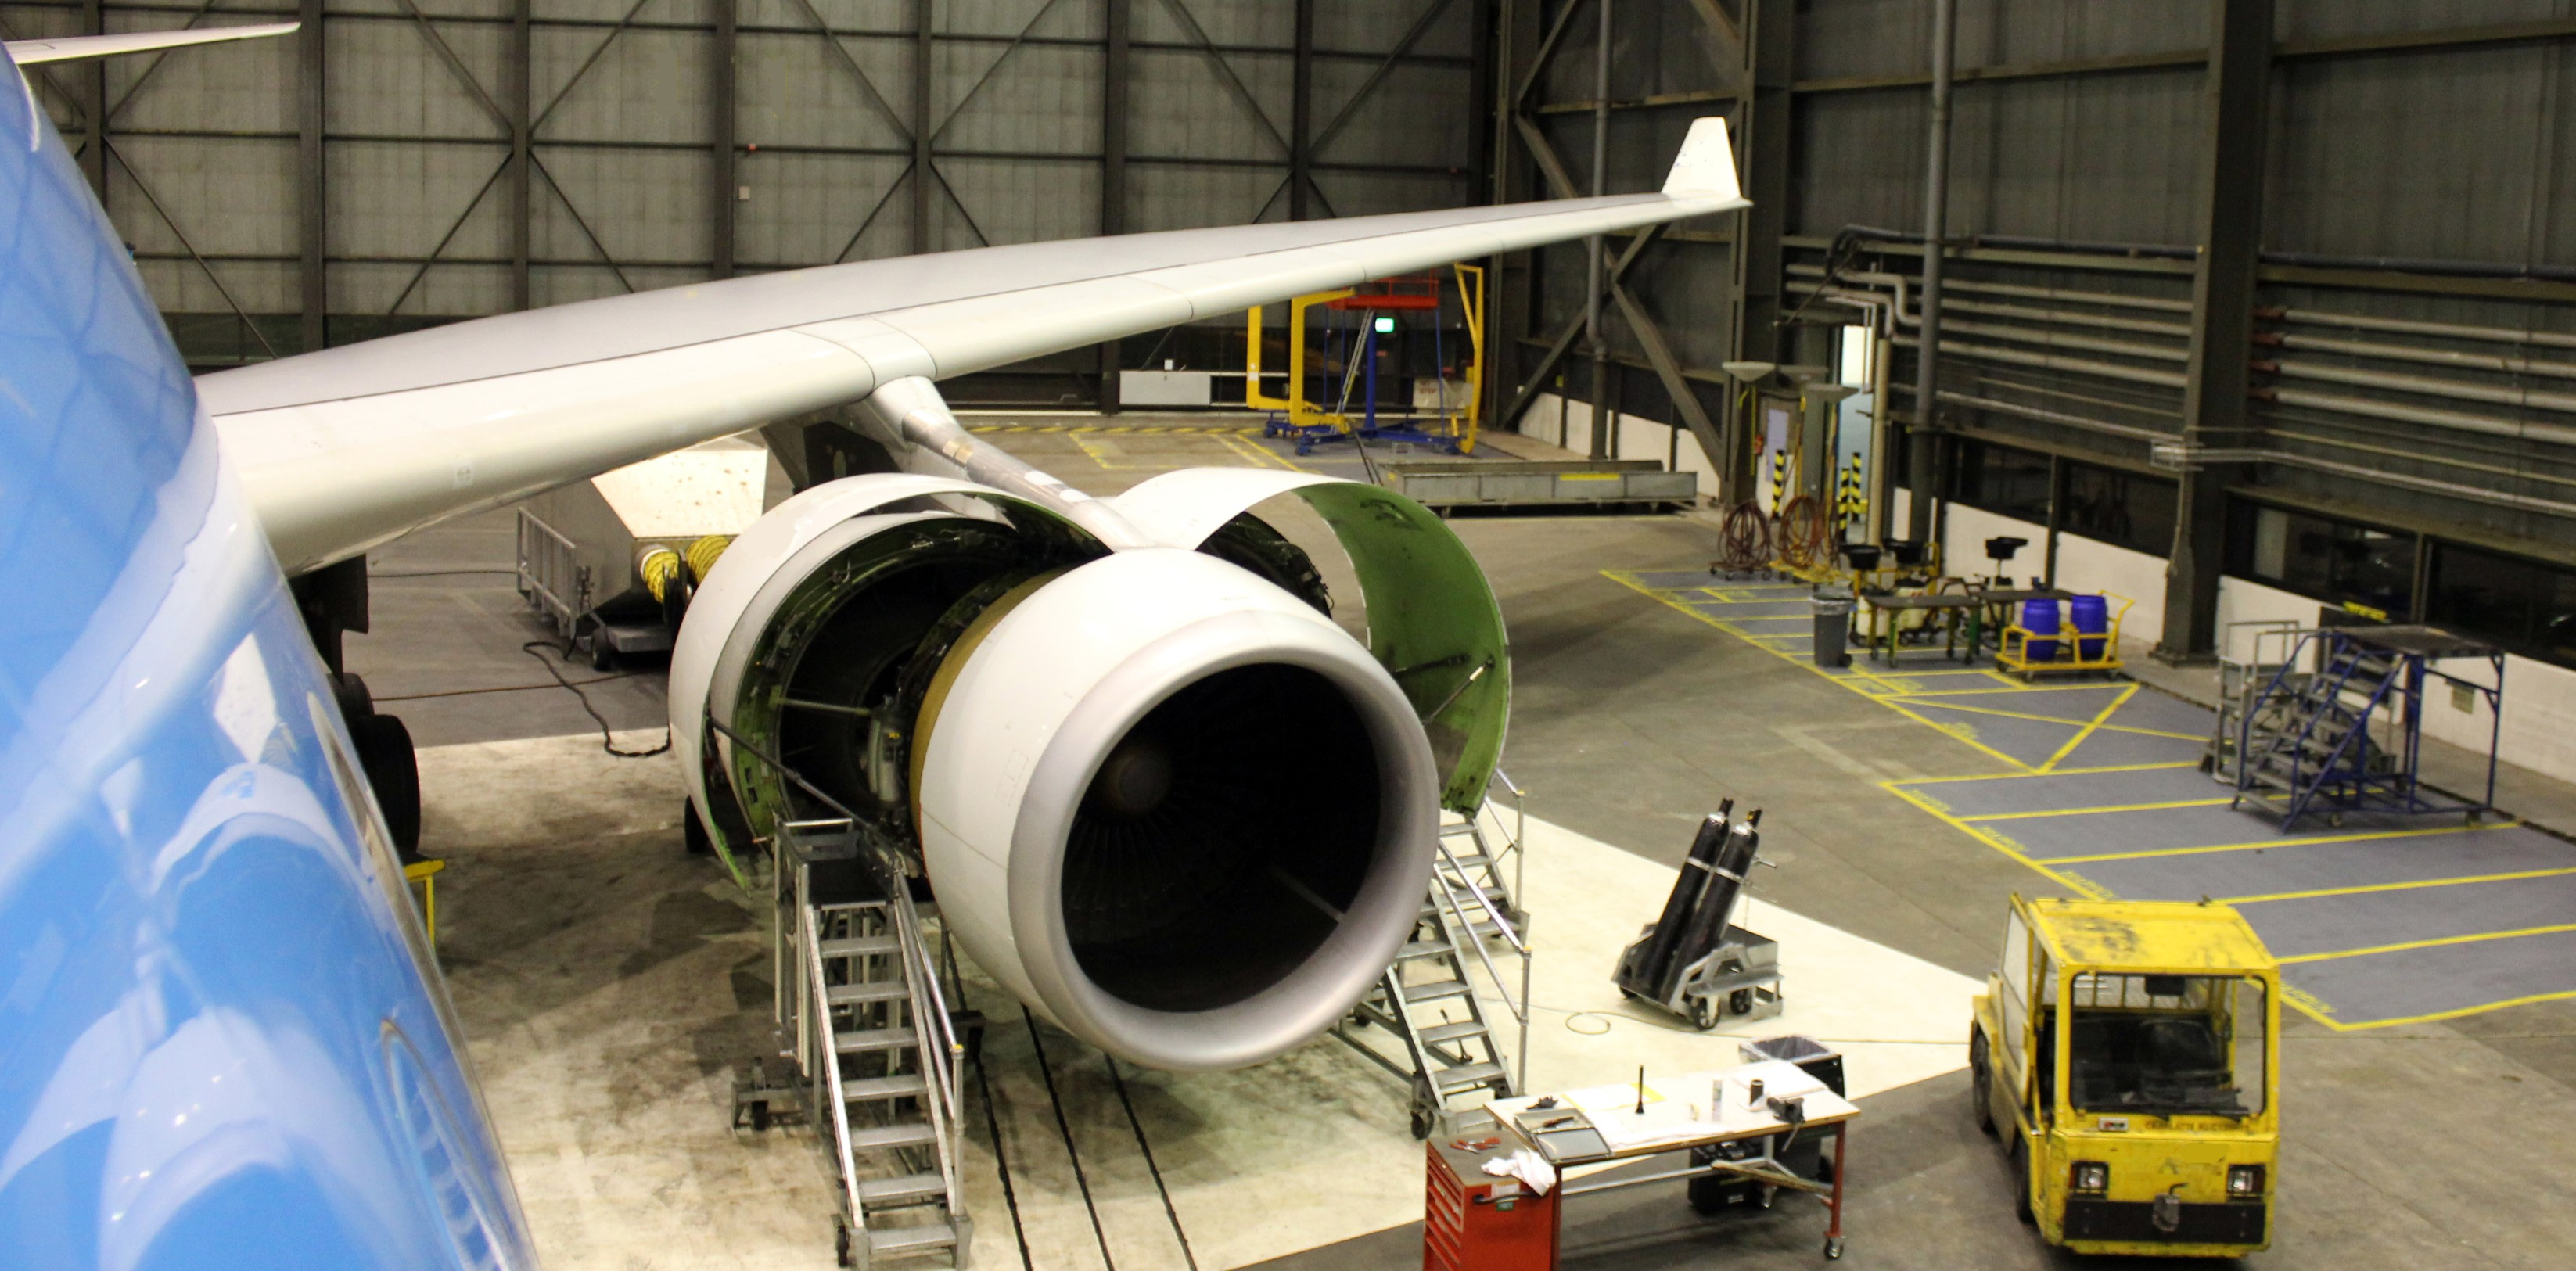 facilities aviation Chevron supplies jet fuels, aviation gasoline and aviation support services to customers worldwide.